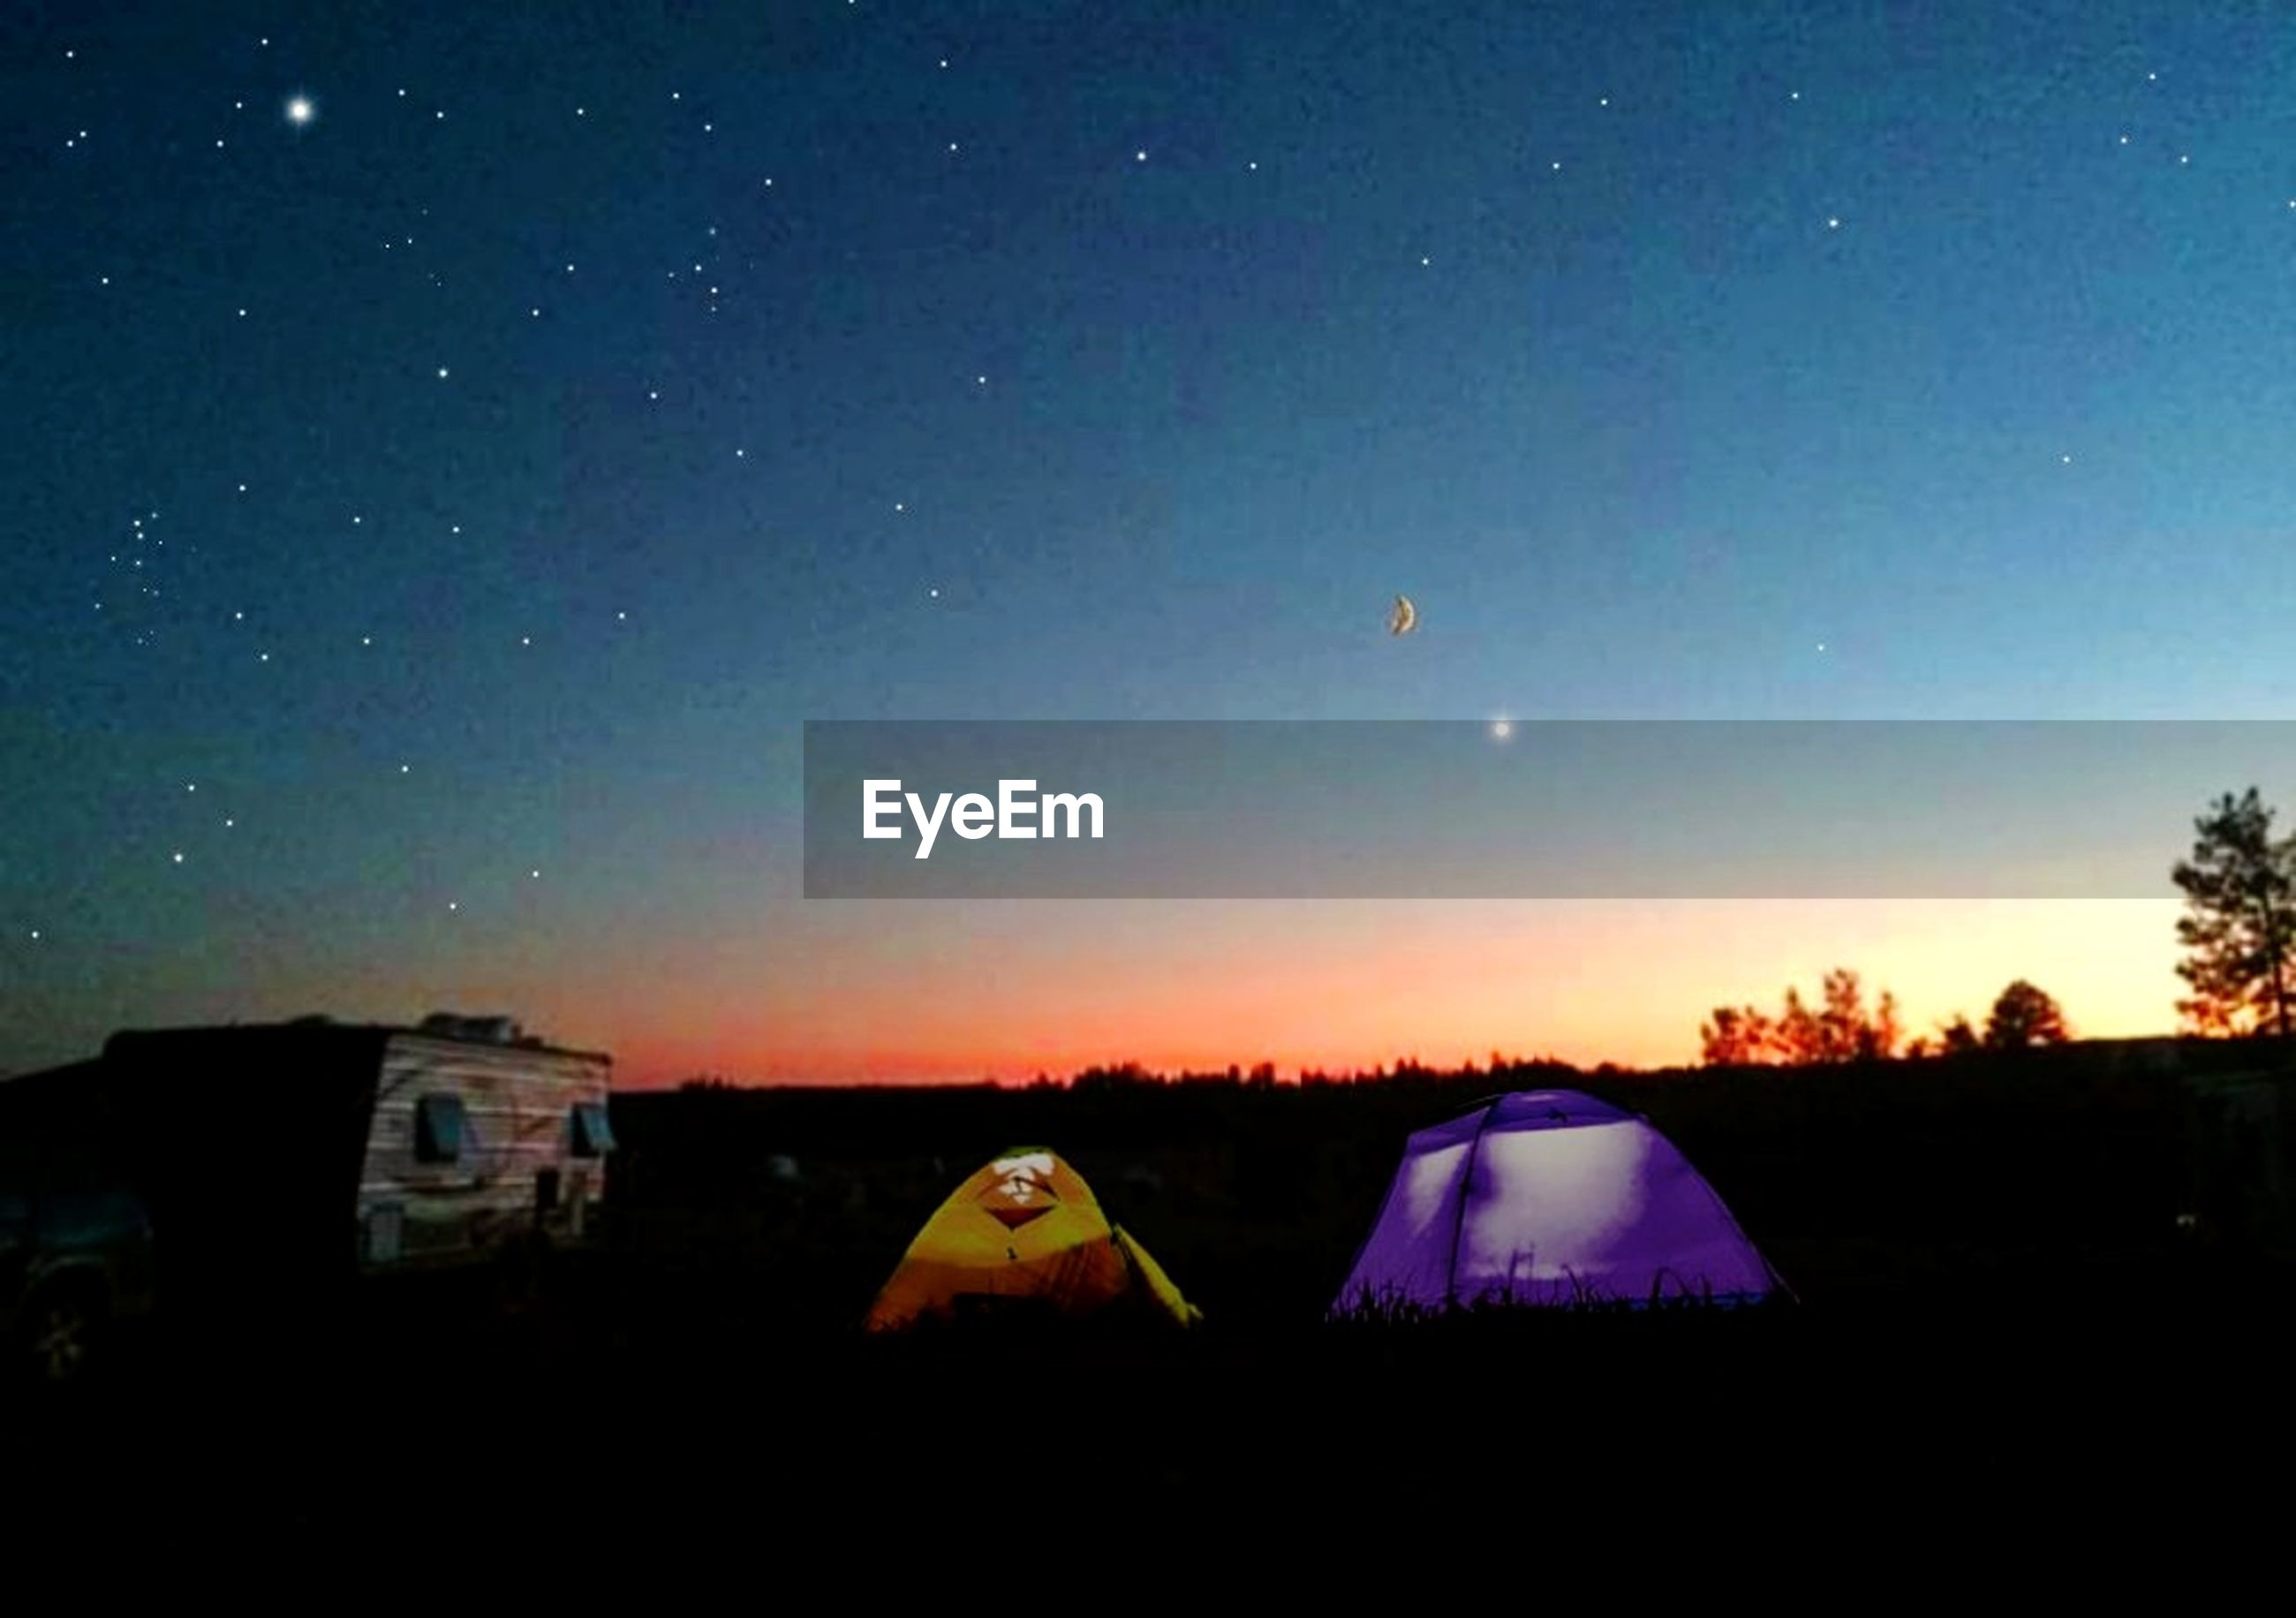 sky, tent, night, nature, scenics - nature, no people, beauty in nature, sunset, tranquility, environment, space, camping, tranquil scene, star - space, outdoors, architecture, land, astronomy, landscape, idyllic, lens flare, dark